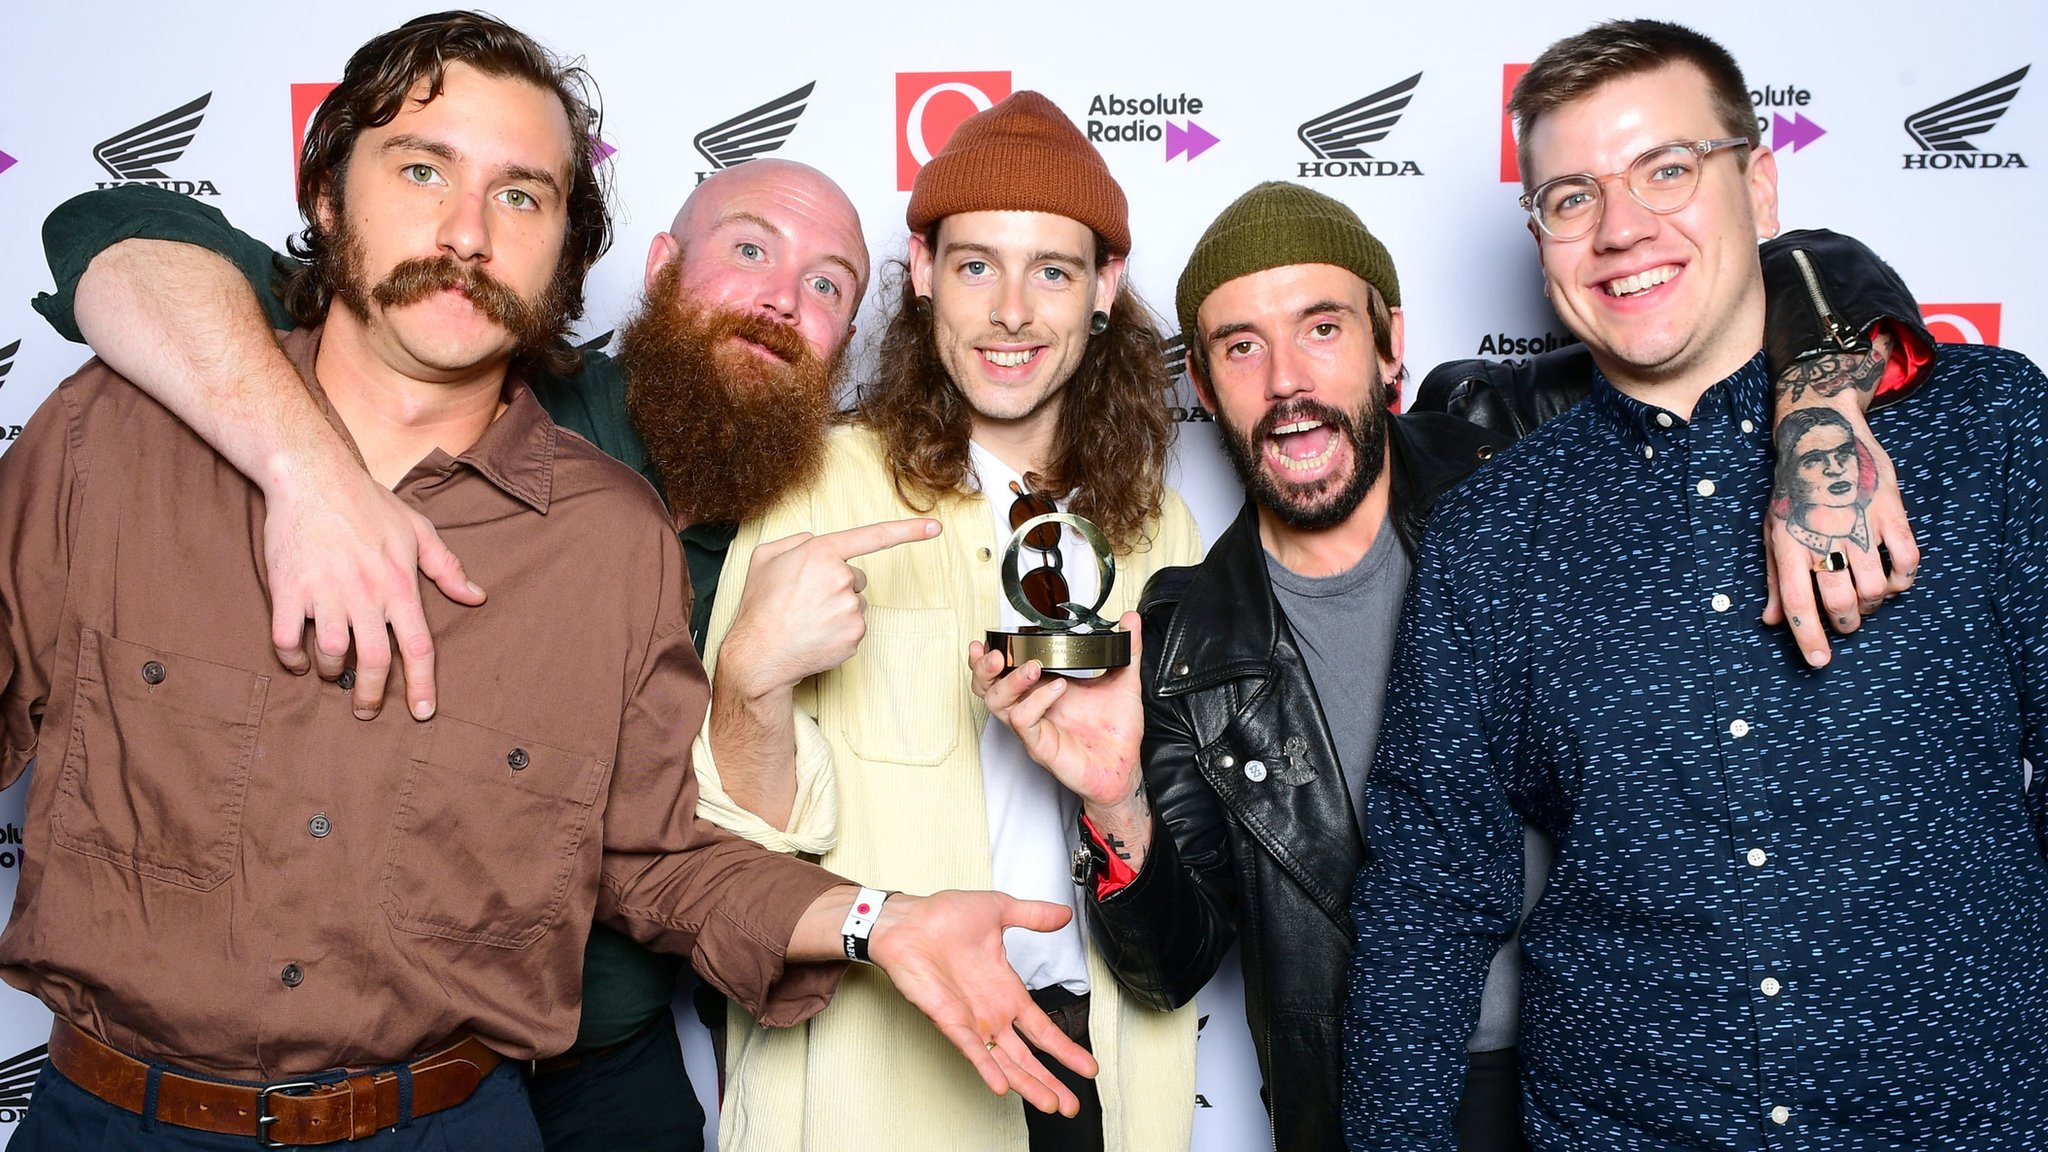 BBC News - Punk rock band Idles top 6 Music's list of best 2018 albums